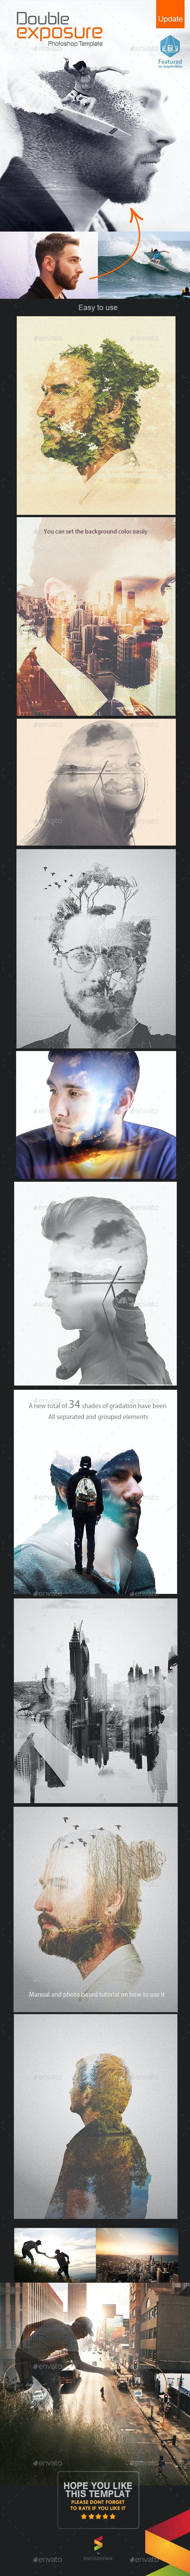 Double Exposure Photoshop Template - Artistic Photo Templates